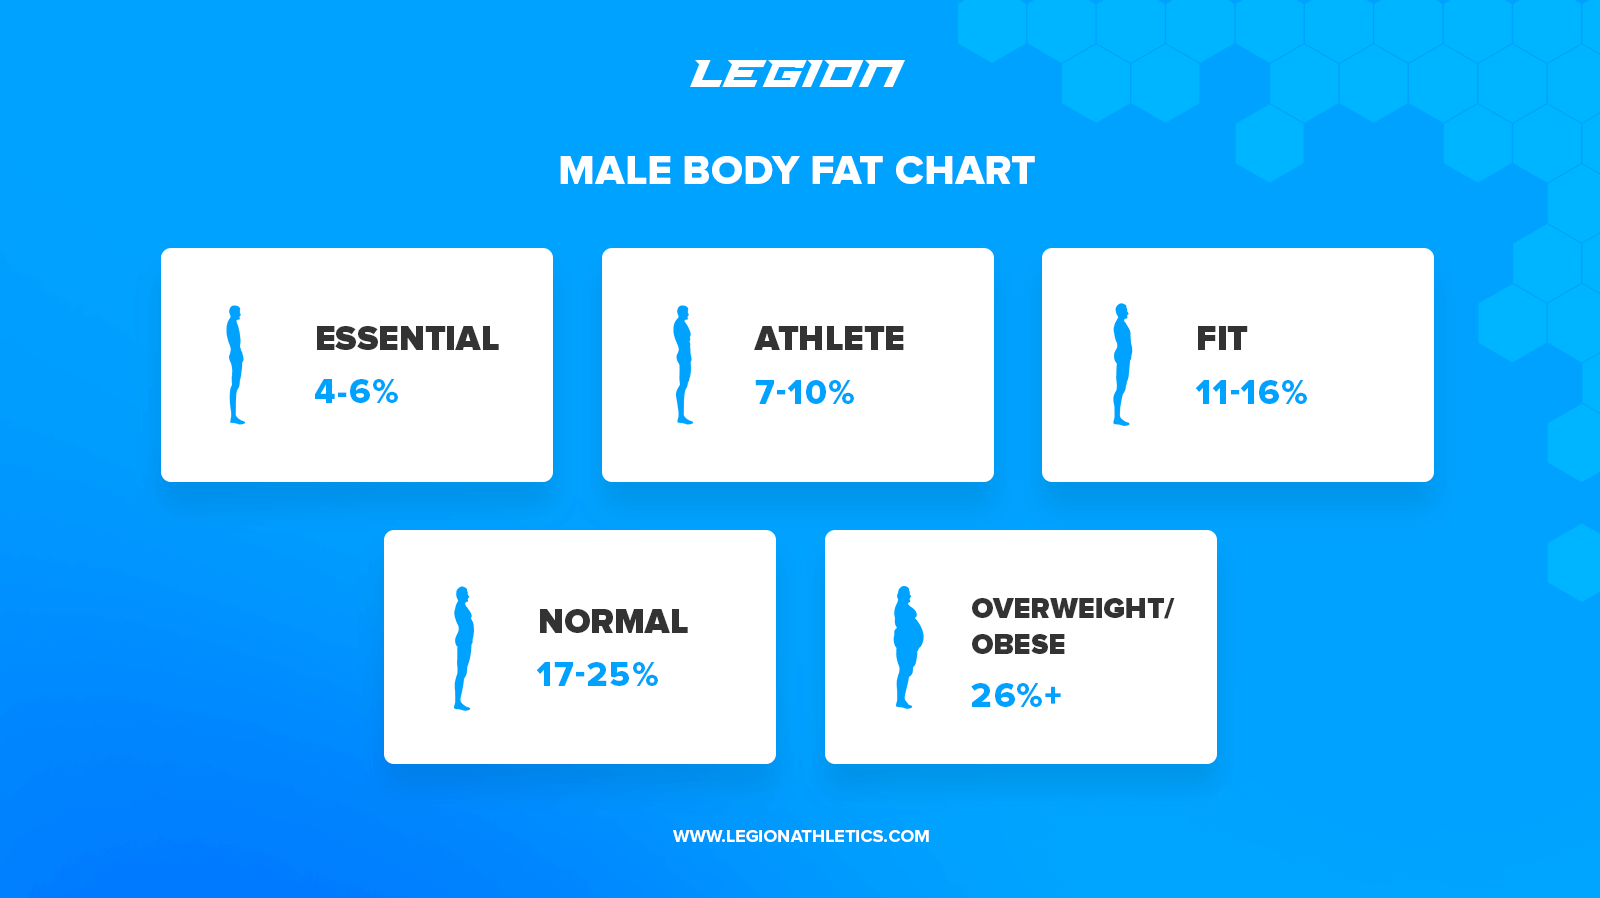 whats a healthy body fat percentage for men and women